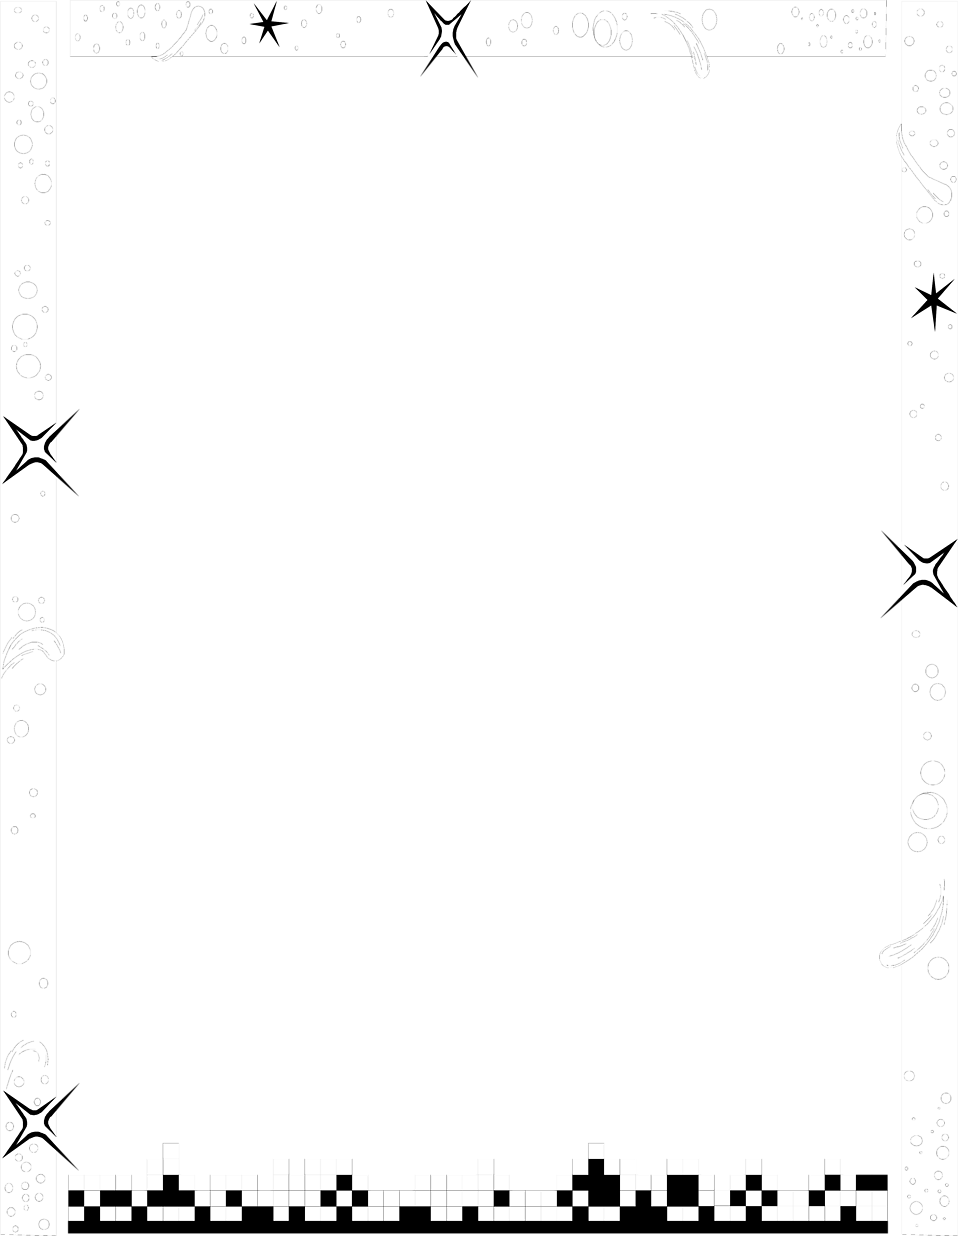 Illustration of a blank frame border with stars.